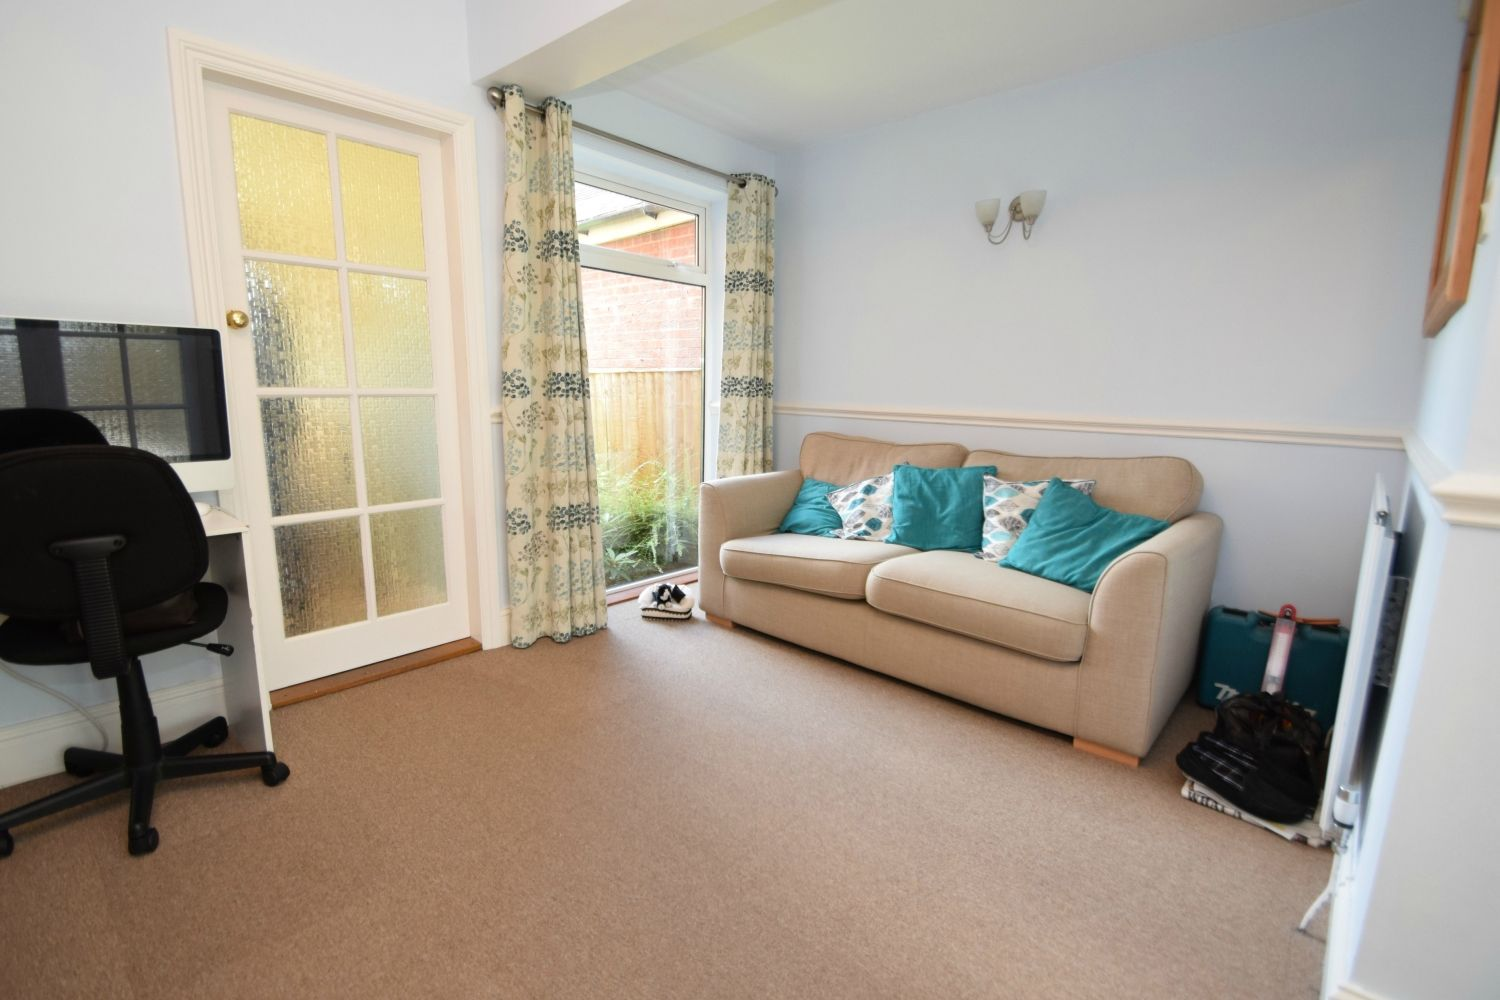 3 bed detached for sale in Reservoir Road, Cofton Hackett 6